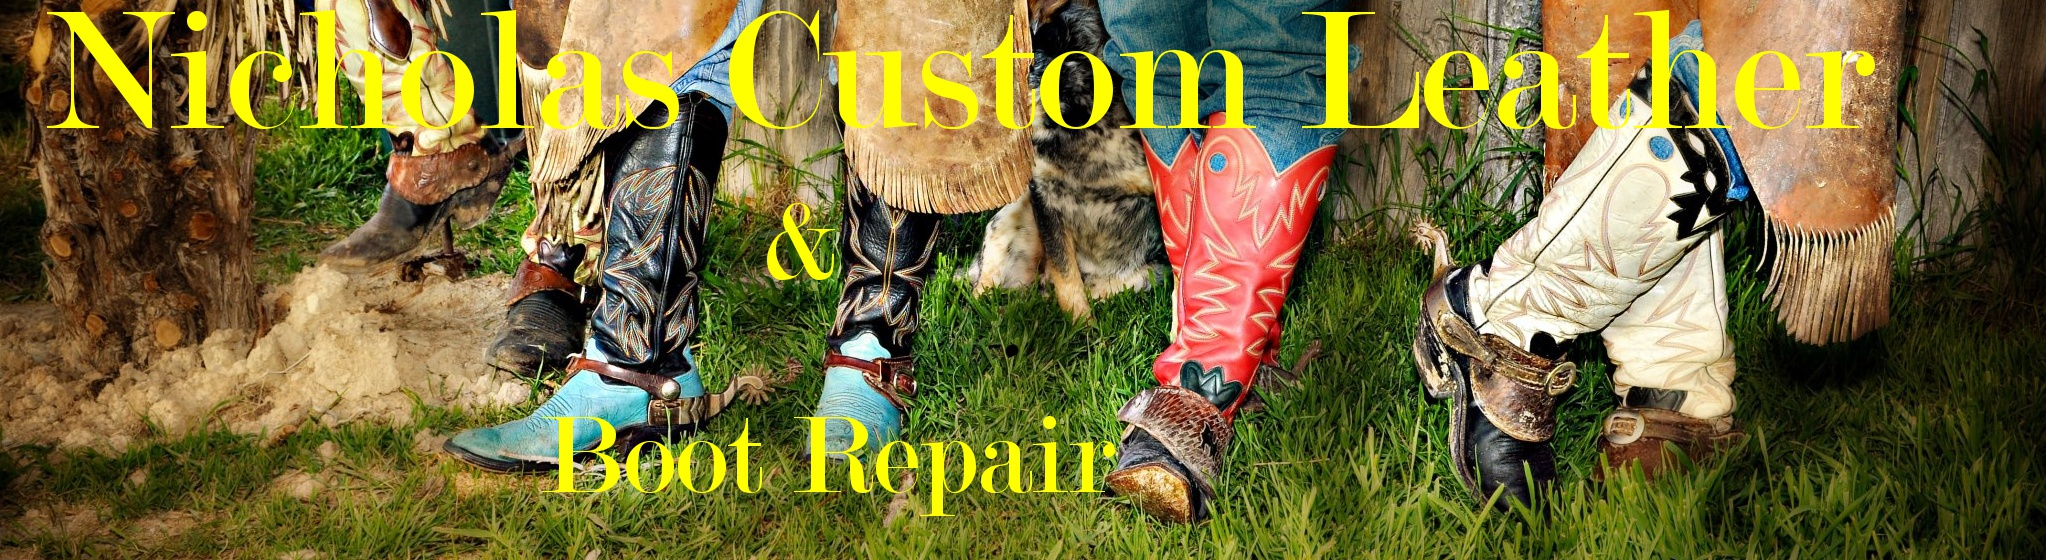 Nicholas Custom Leather       &                             Boot Repair